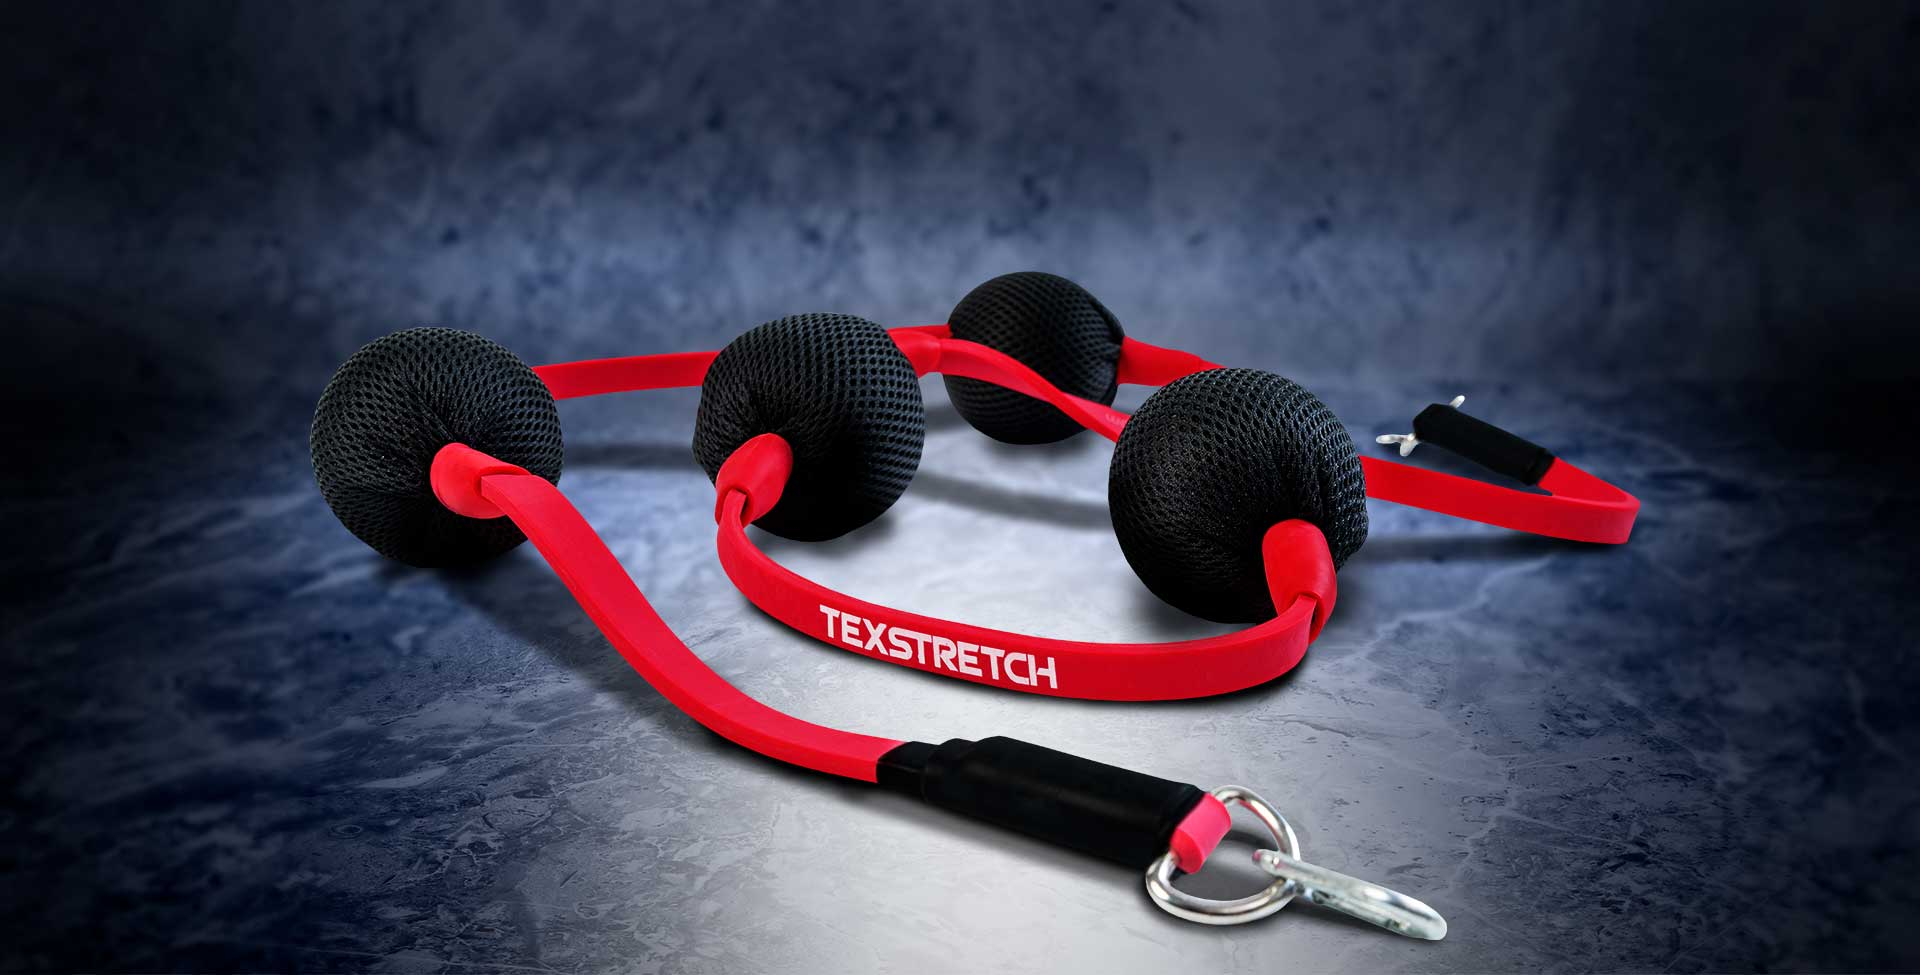 Texstretch Badminton Trainer